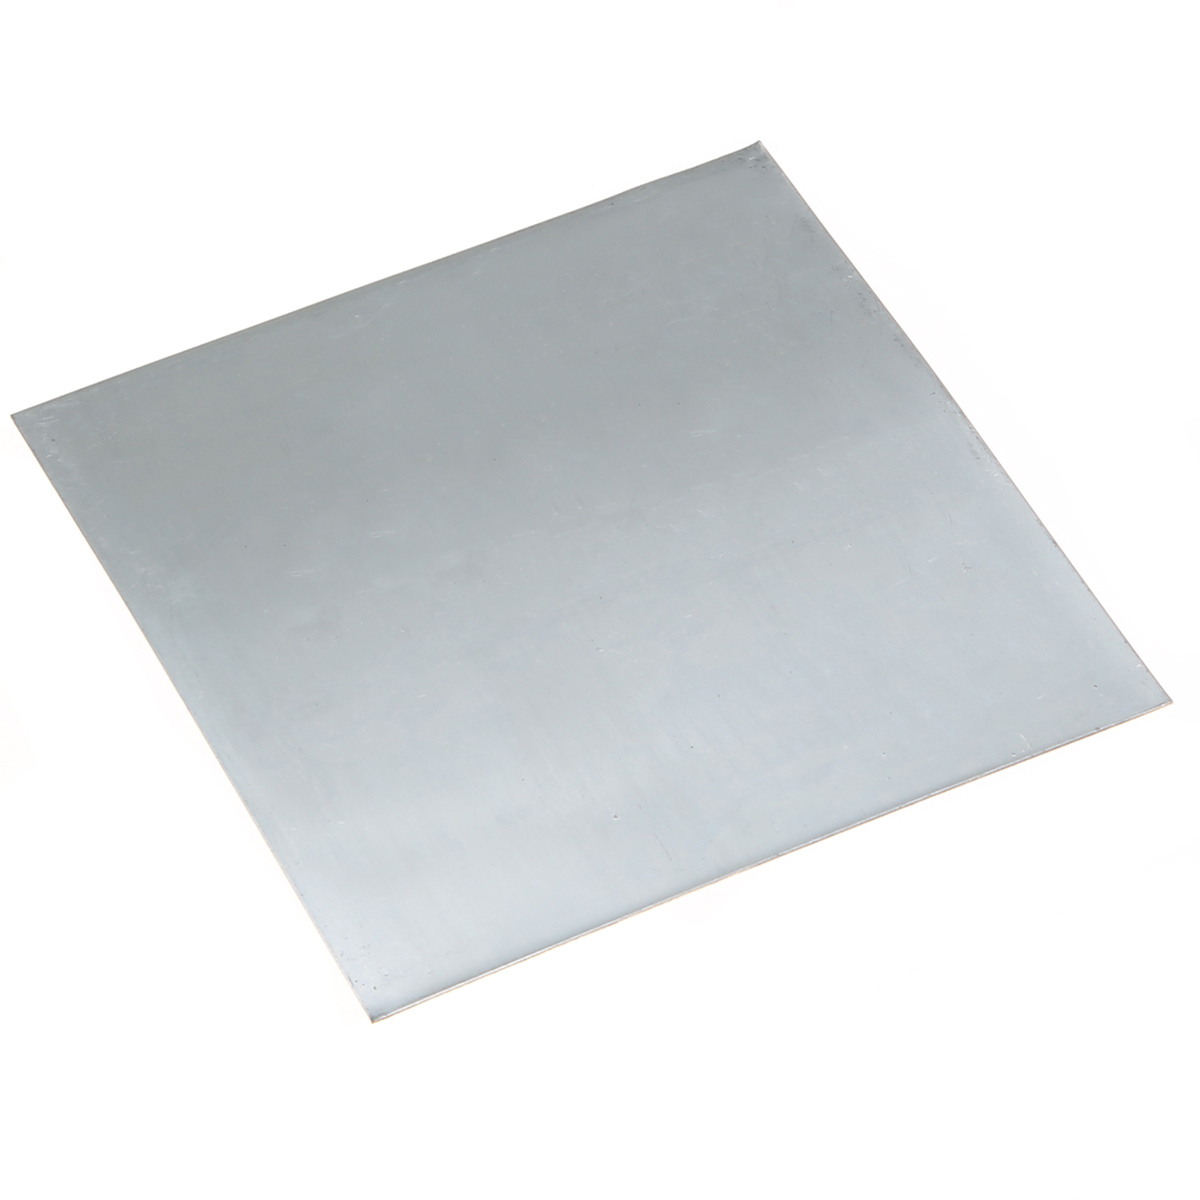 1pc Zinc Plate 99.9% Pure Zinc Zn Sheet Plate 100mmx100mmx0.2mm For Science Lab Accessories bondibon bondibon настольная игра гонки